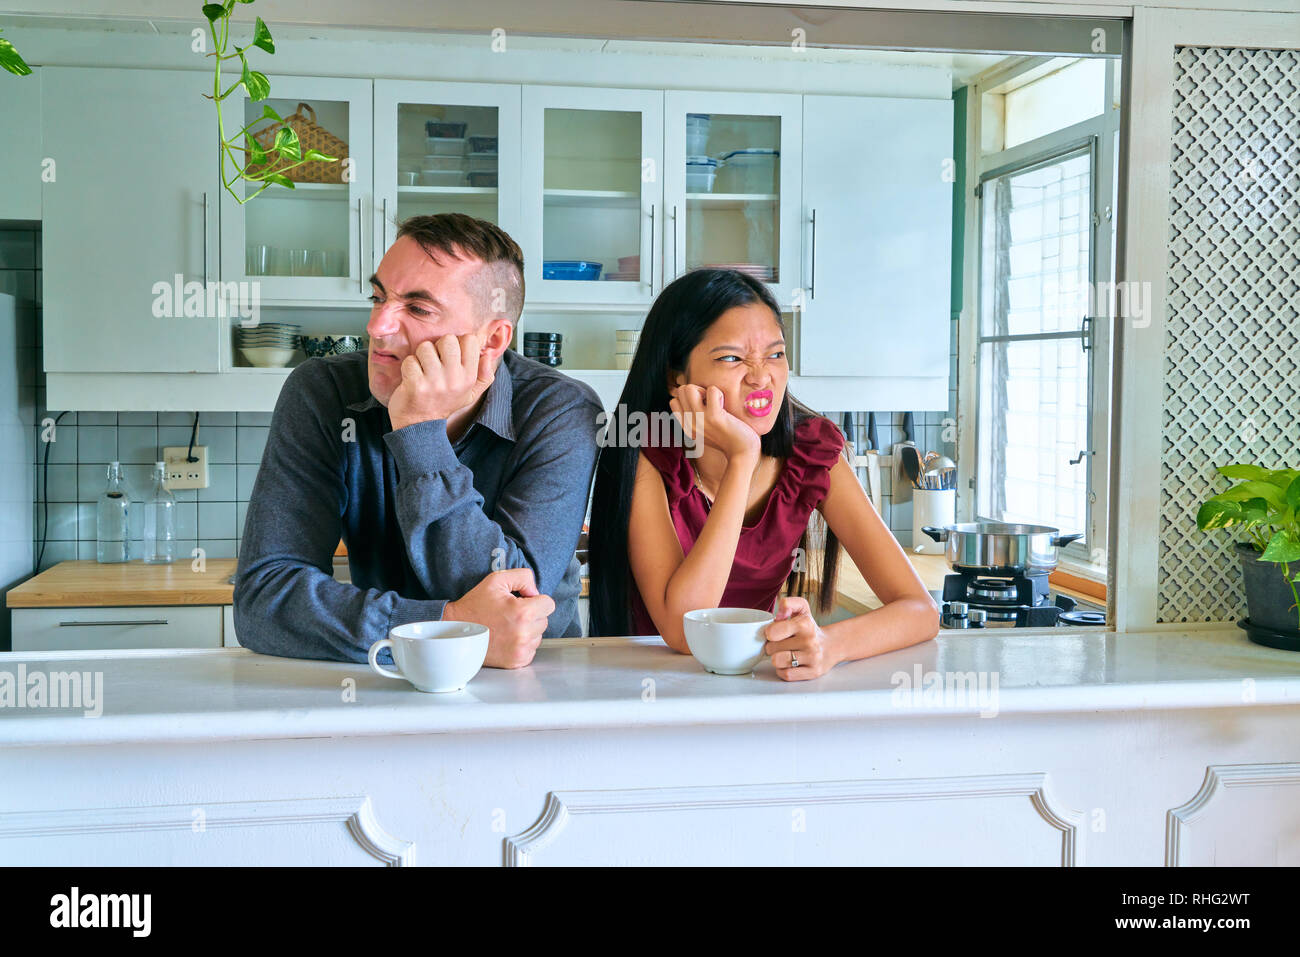 Lovely couple posing - ignoring each other - Stock Image